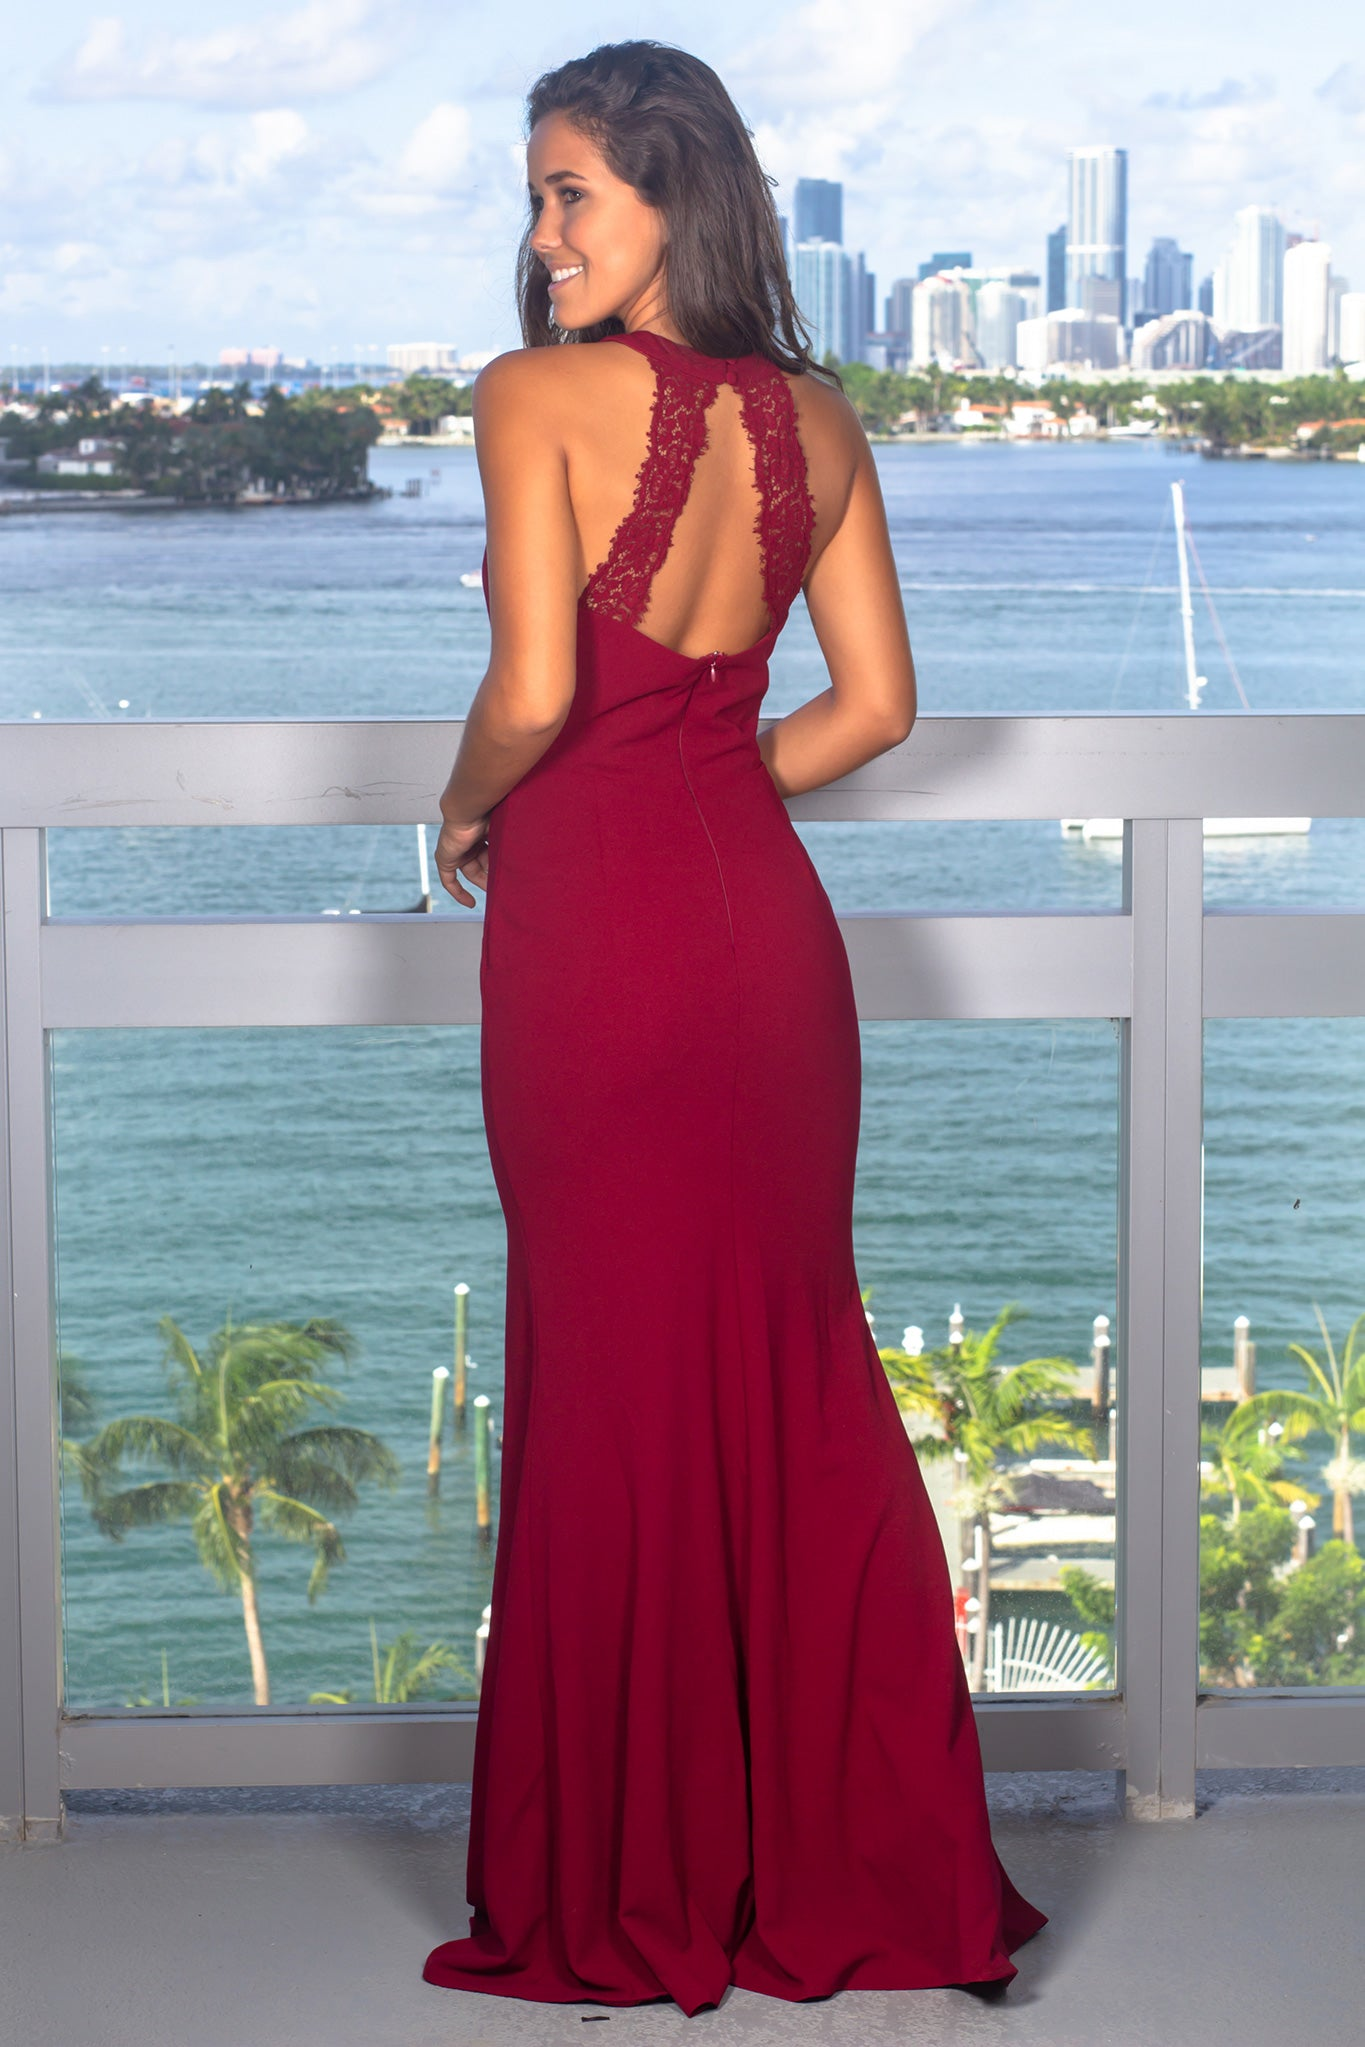 Red Halter Neck Maxi Dress with Lace Detail